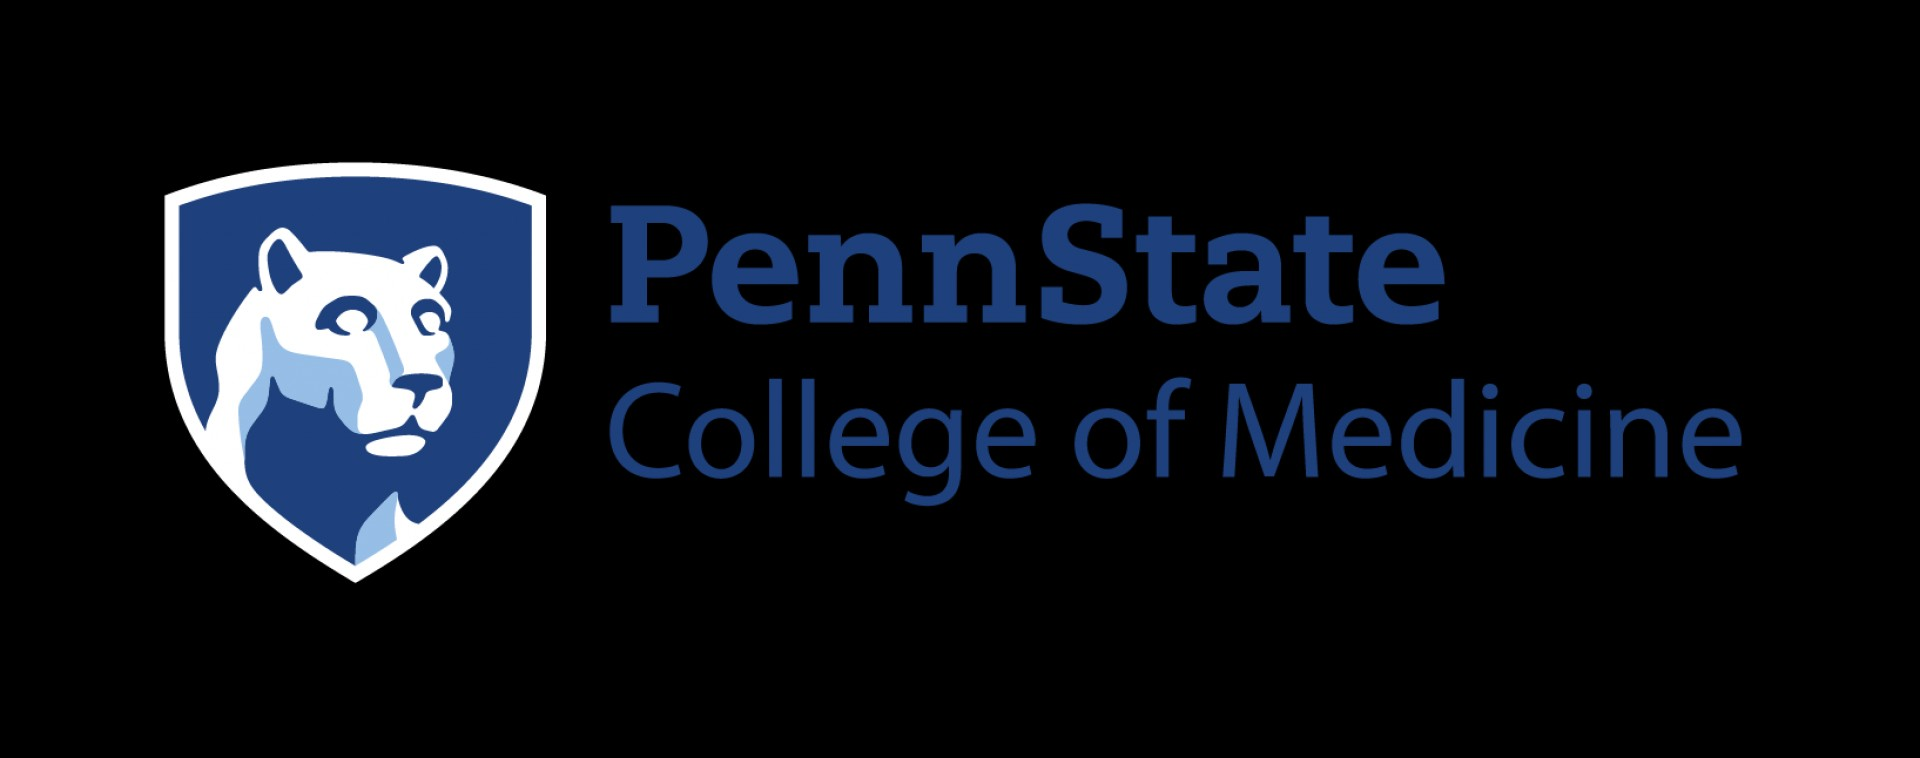 016 Penn State Essay Pennsylvania University College Of Medicine Secondary Formidable Samples Prompt 2017 Common App 1920